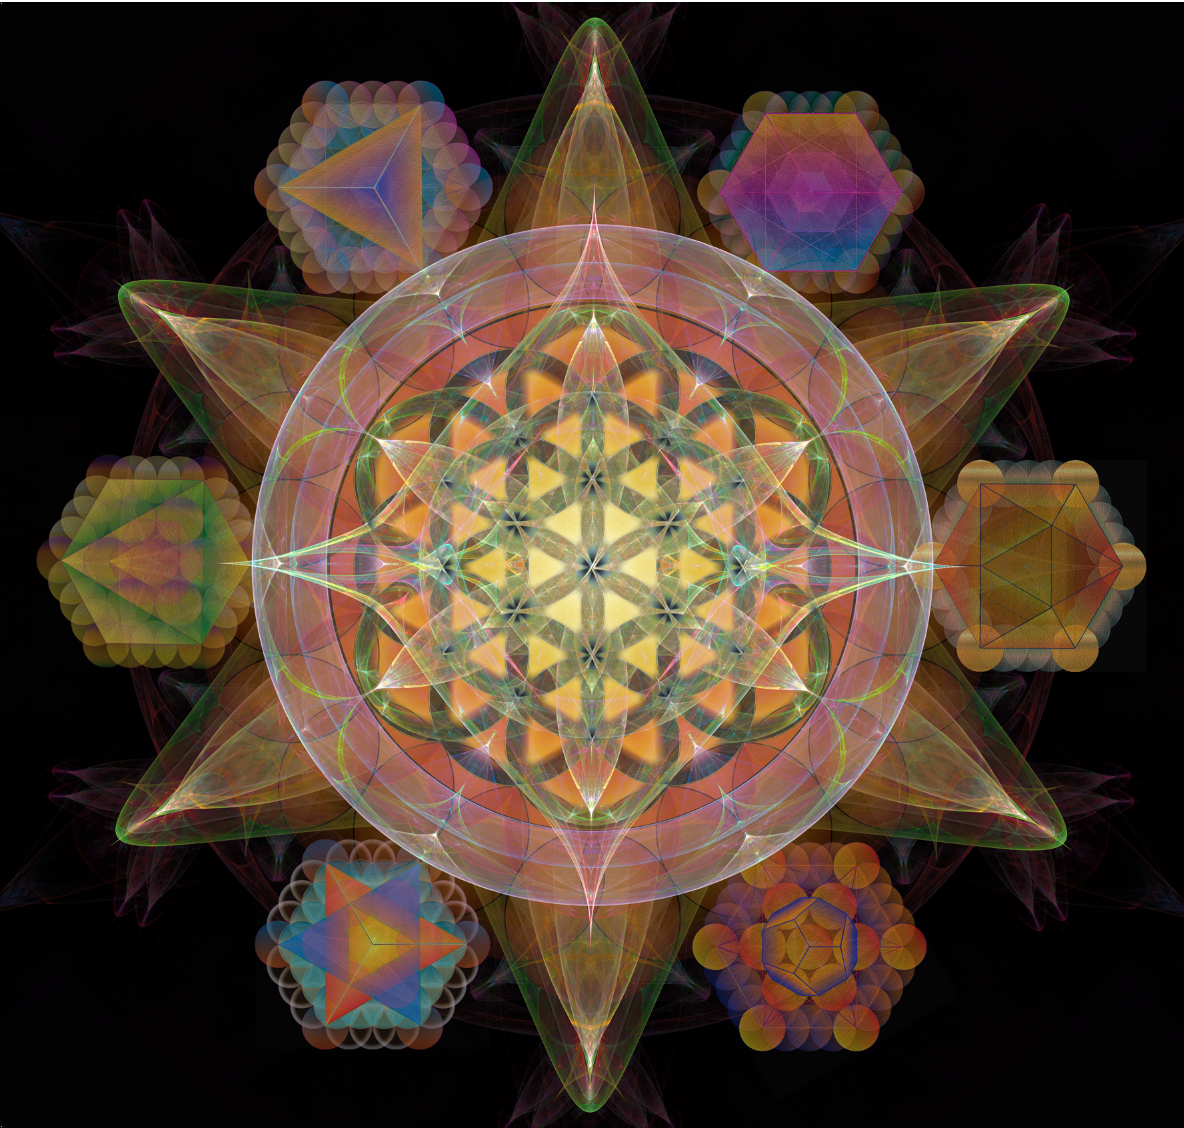 The Flower of life, platonic Solids, metatrons cube, sacred geometry,  fractal,